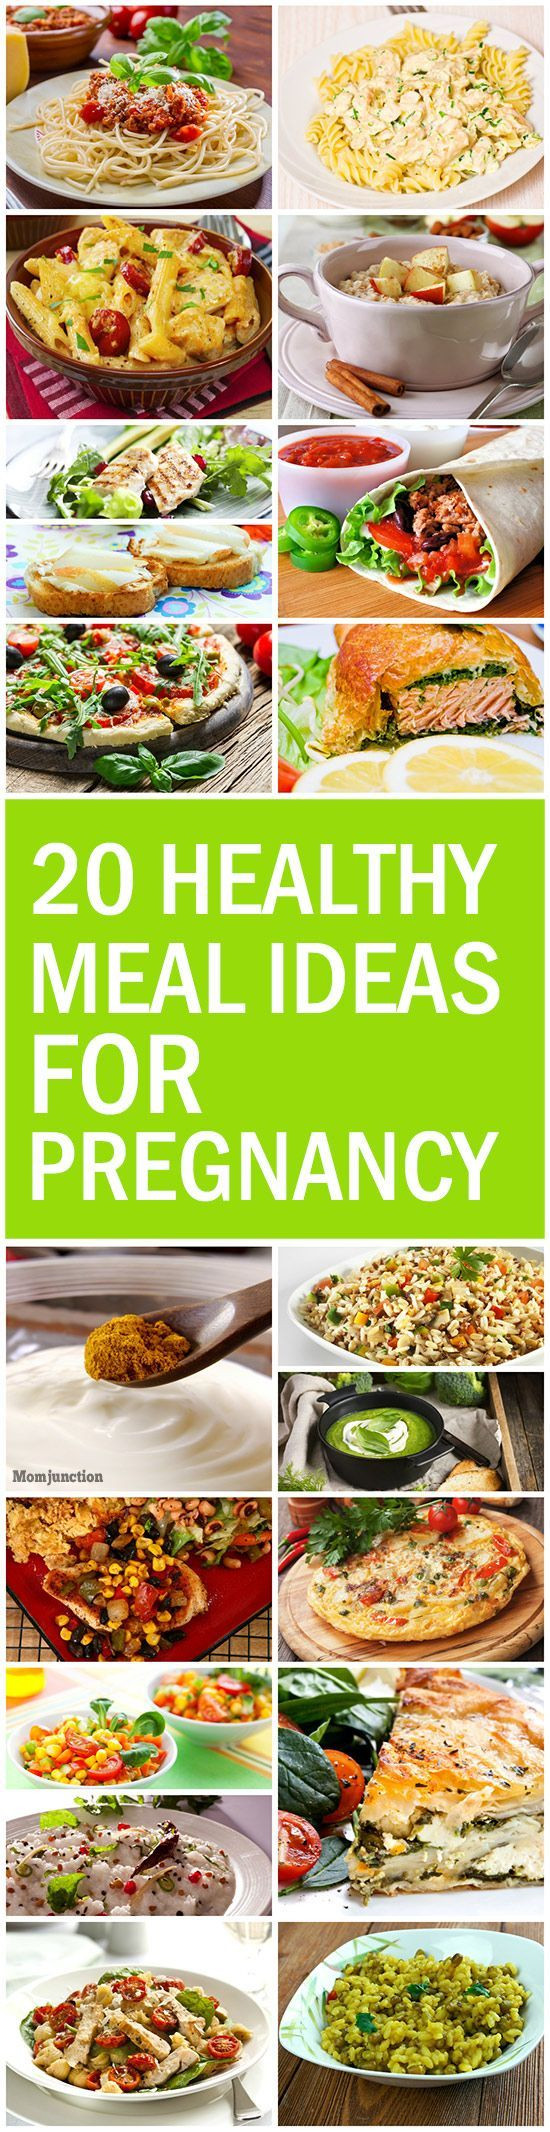 Healthy Pregnancy Dinner Recipes  20 Healthy Meal Ideas For Pregnancy